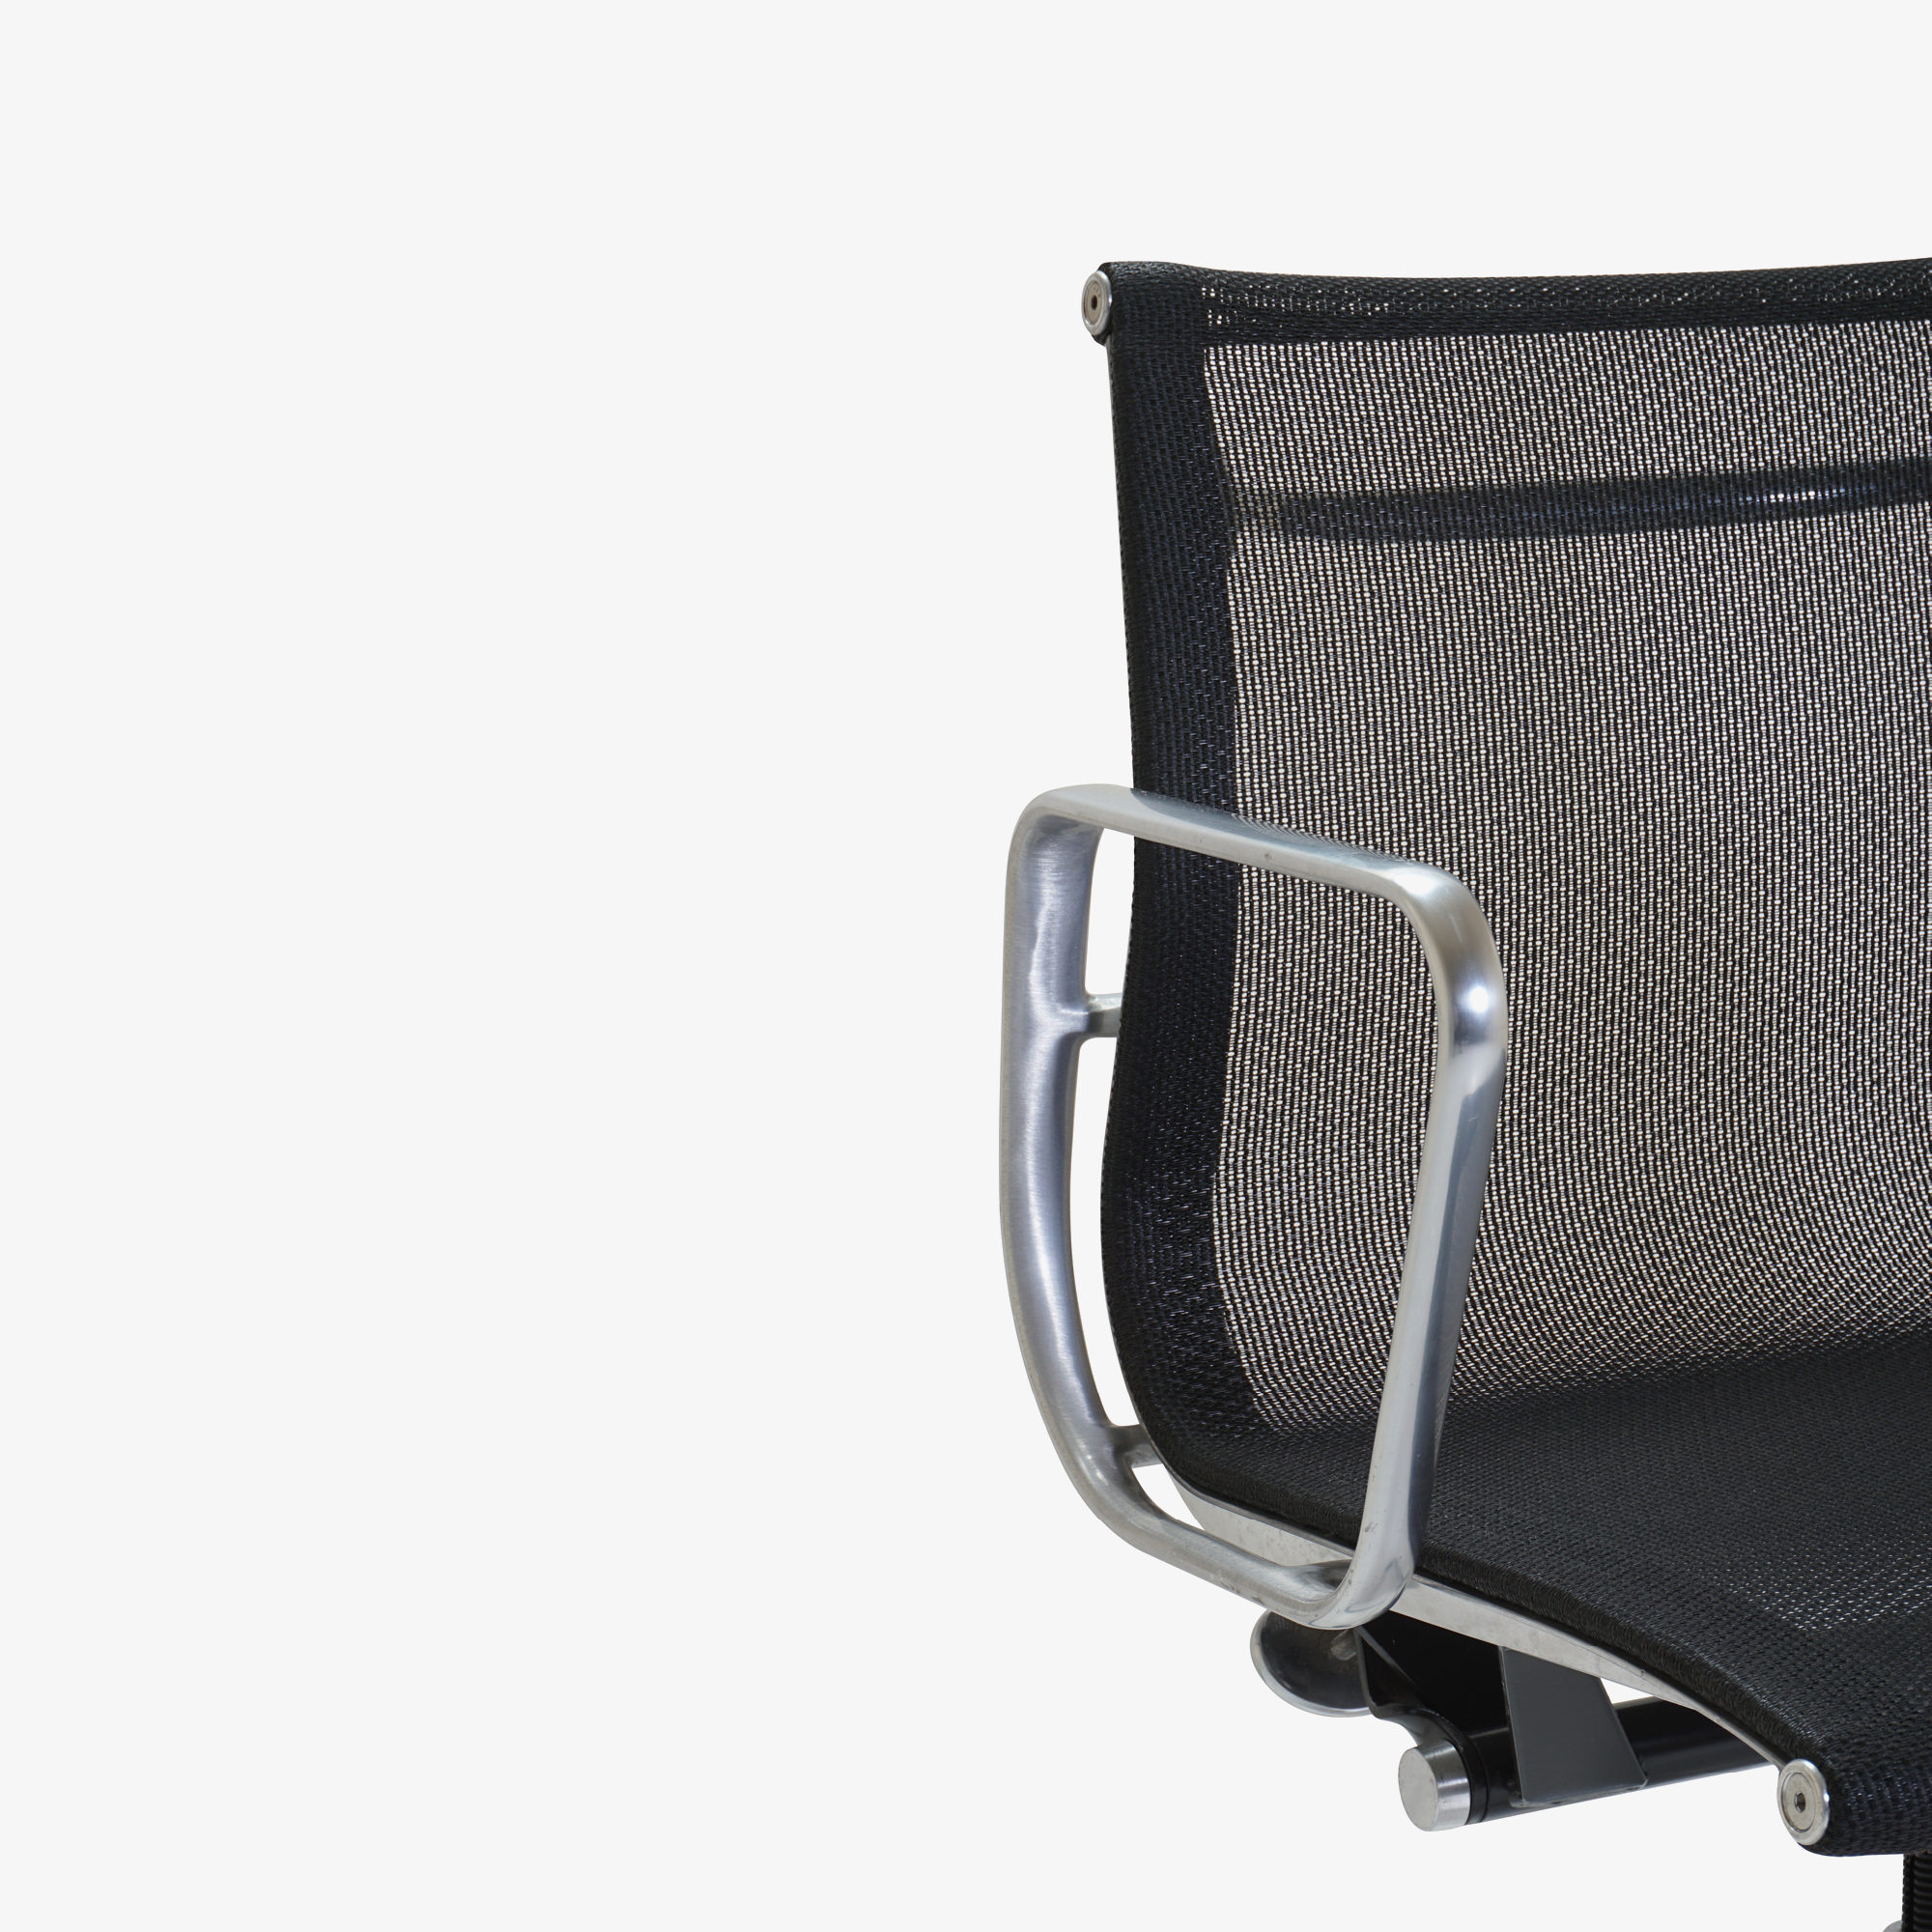 Aluminum Group Management Chair in Black Mesh by Charles & Ray Eames for Herman Miller7.png